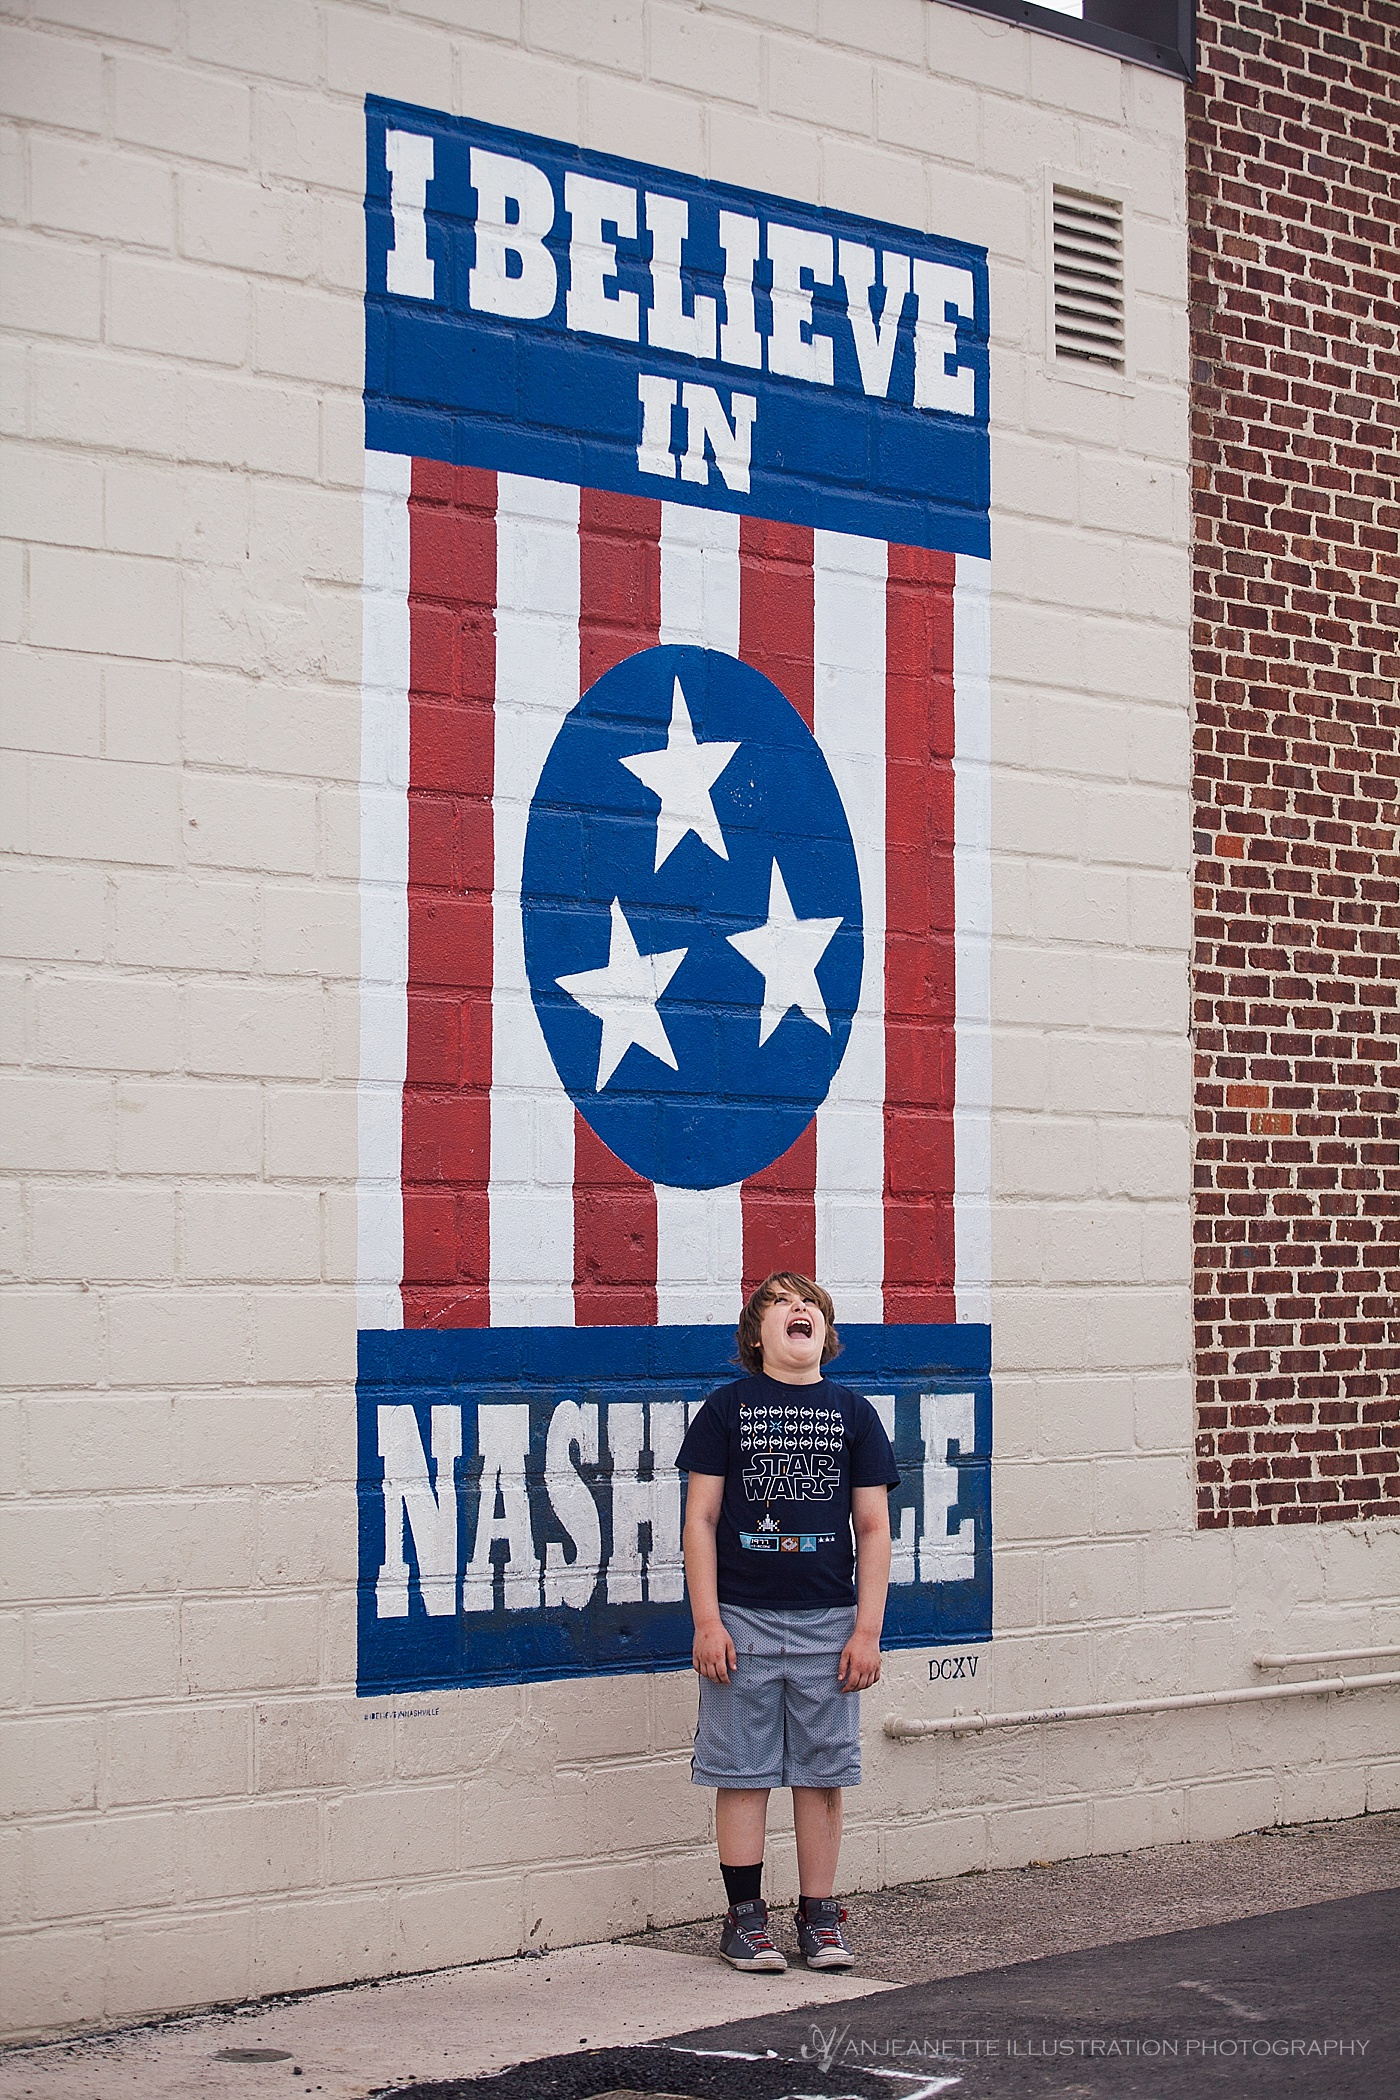 Is a trip to Nashvegas complete without n I Believe In Nashville photo?